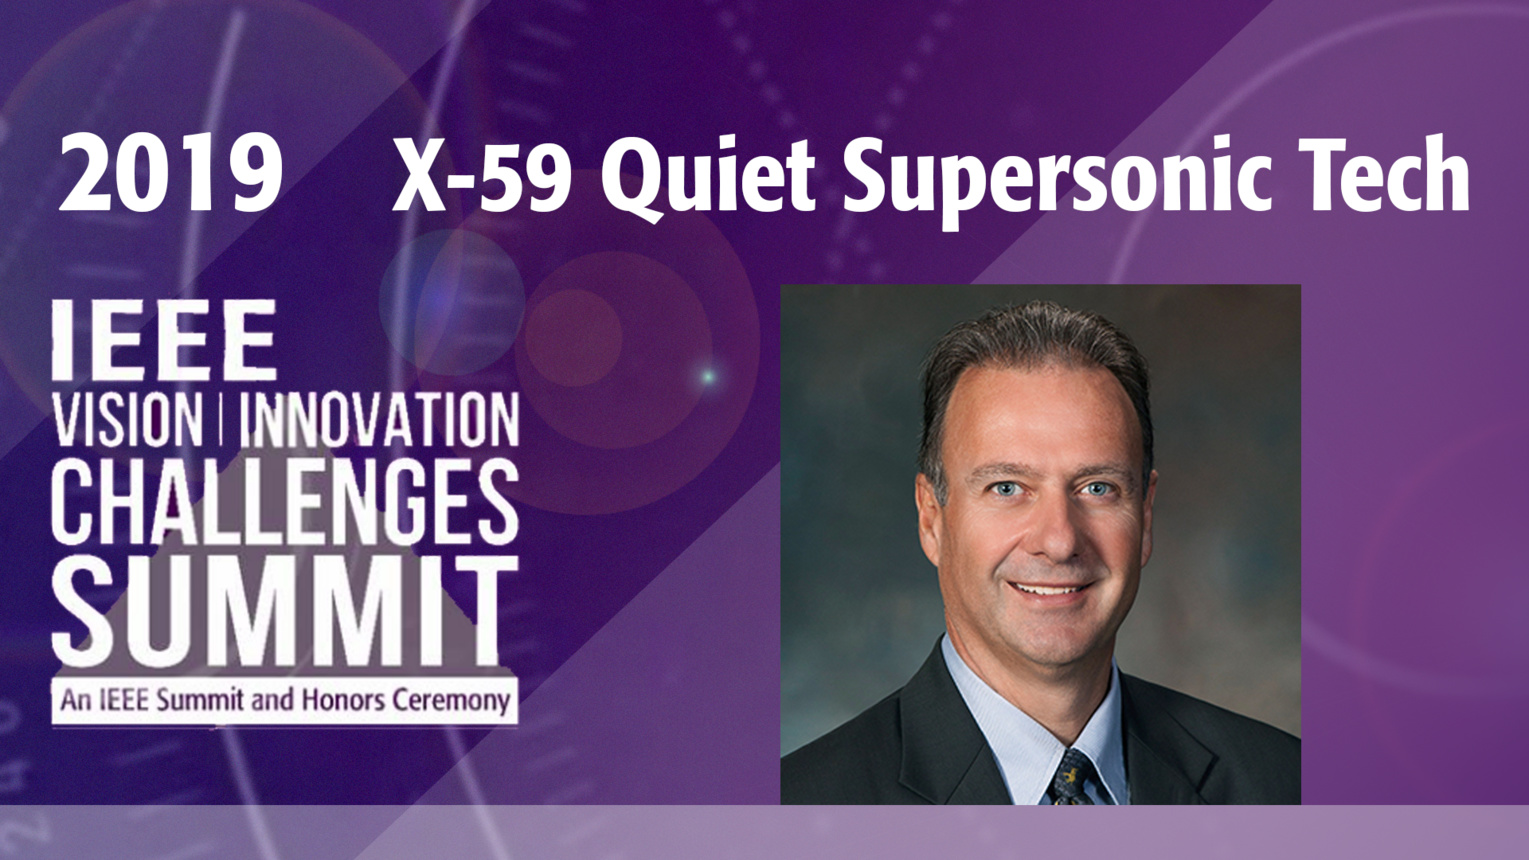 X-59 Quiet Supersonic Technology X-Plane - Peter Iosifidis - VIC Summit 2019